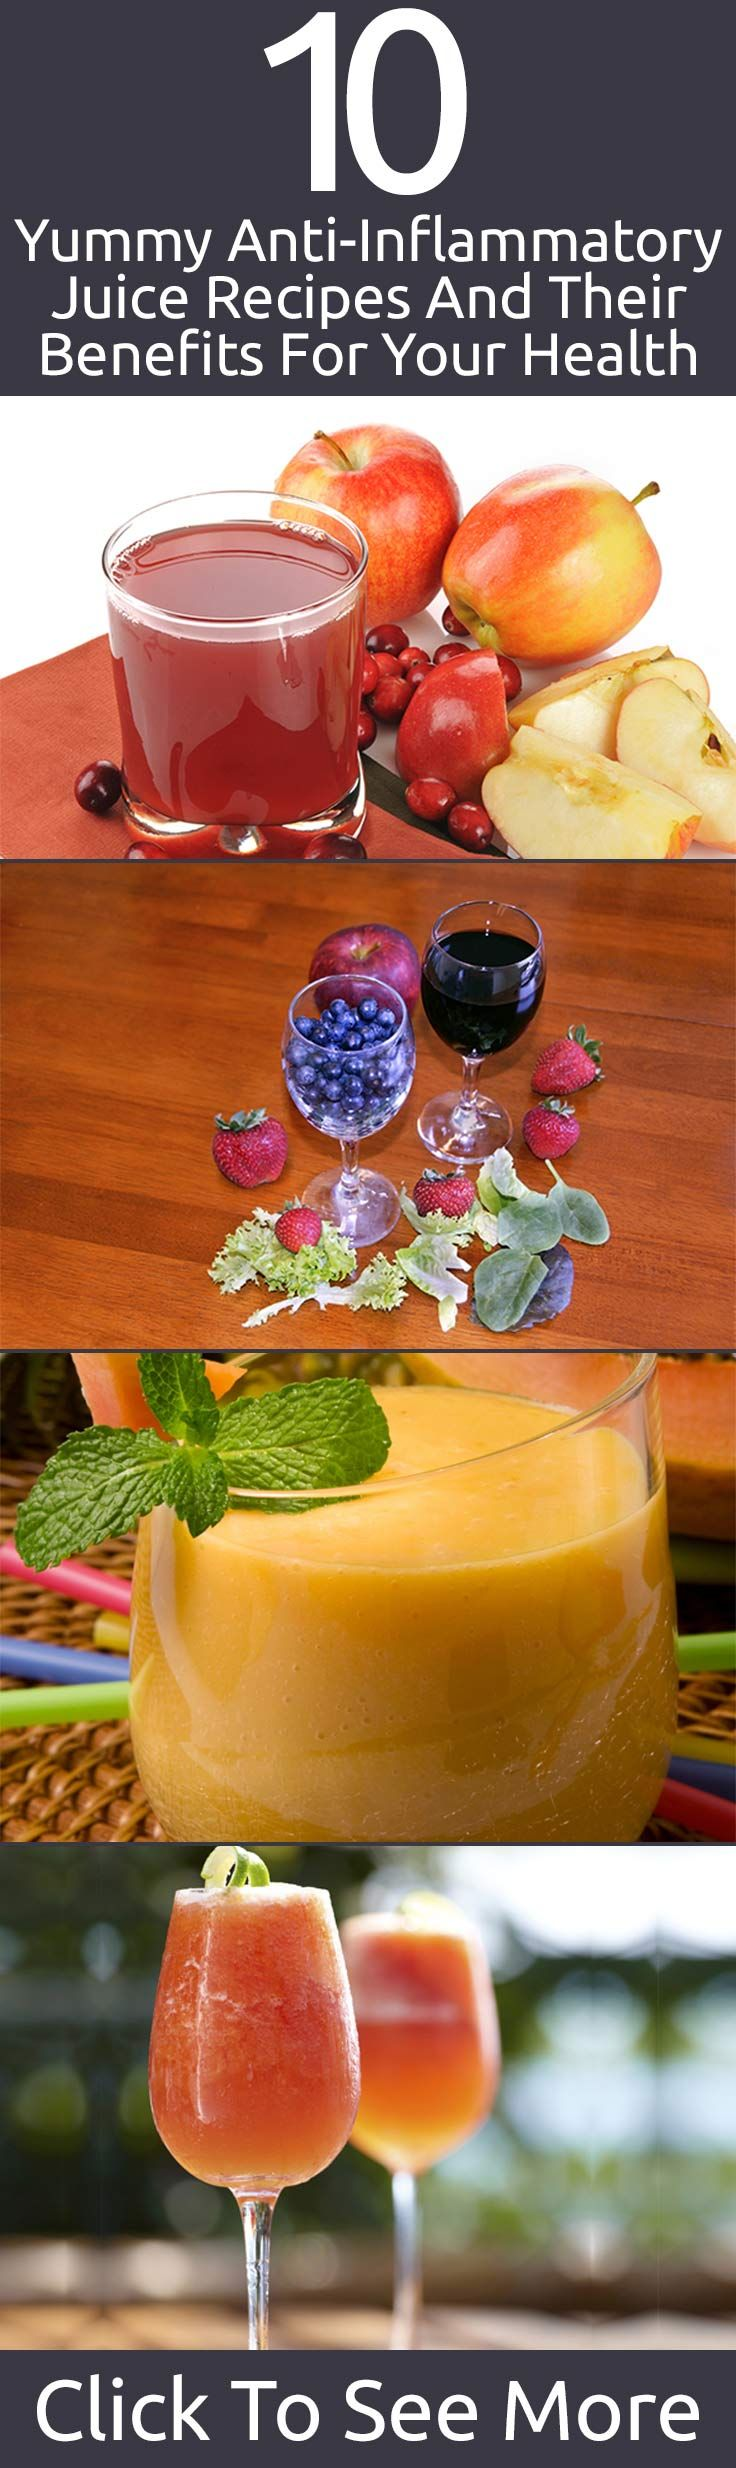 10 Yummy Anti-Inflammatory Juice Recipes And Their Benefits For Your Health #juice #recipes #yummy